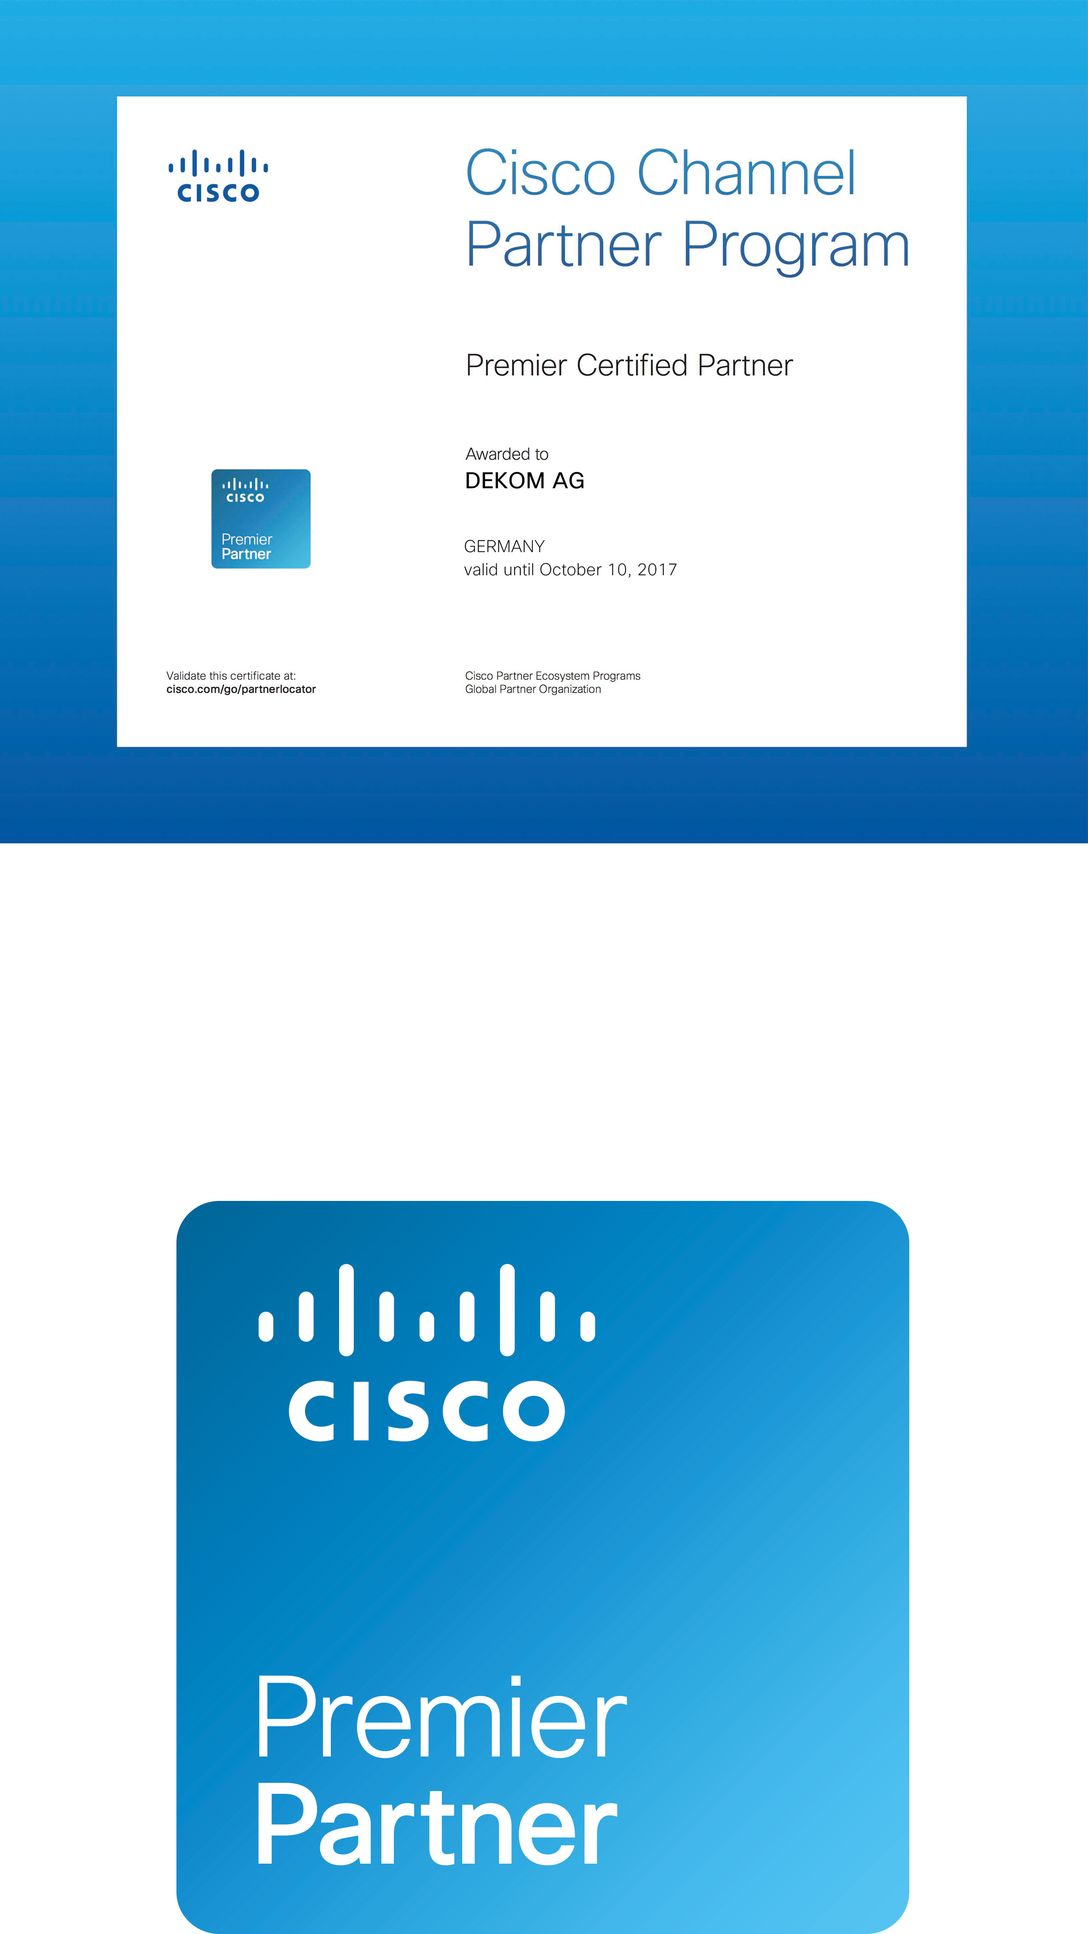 Dekom Receives Premier Partner Certification From Cisco In Germany